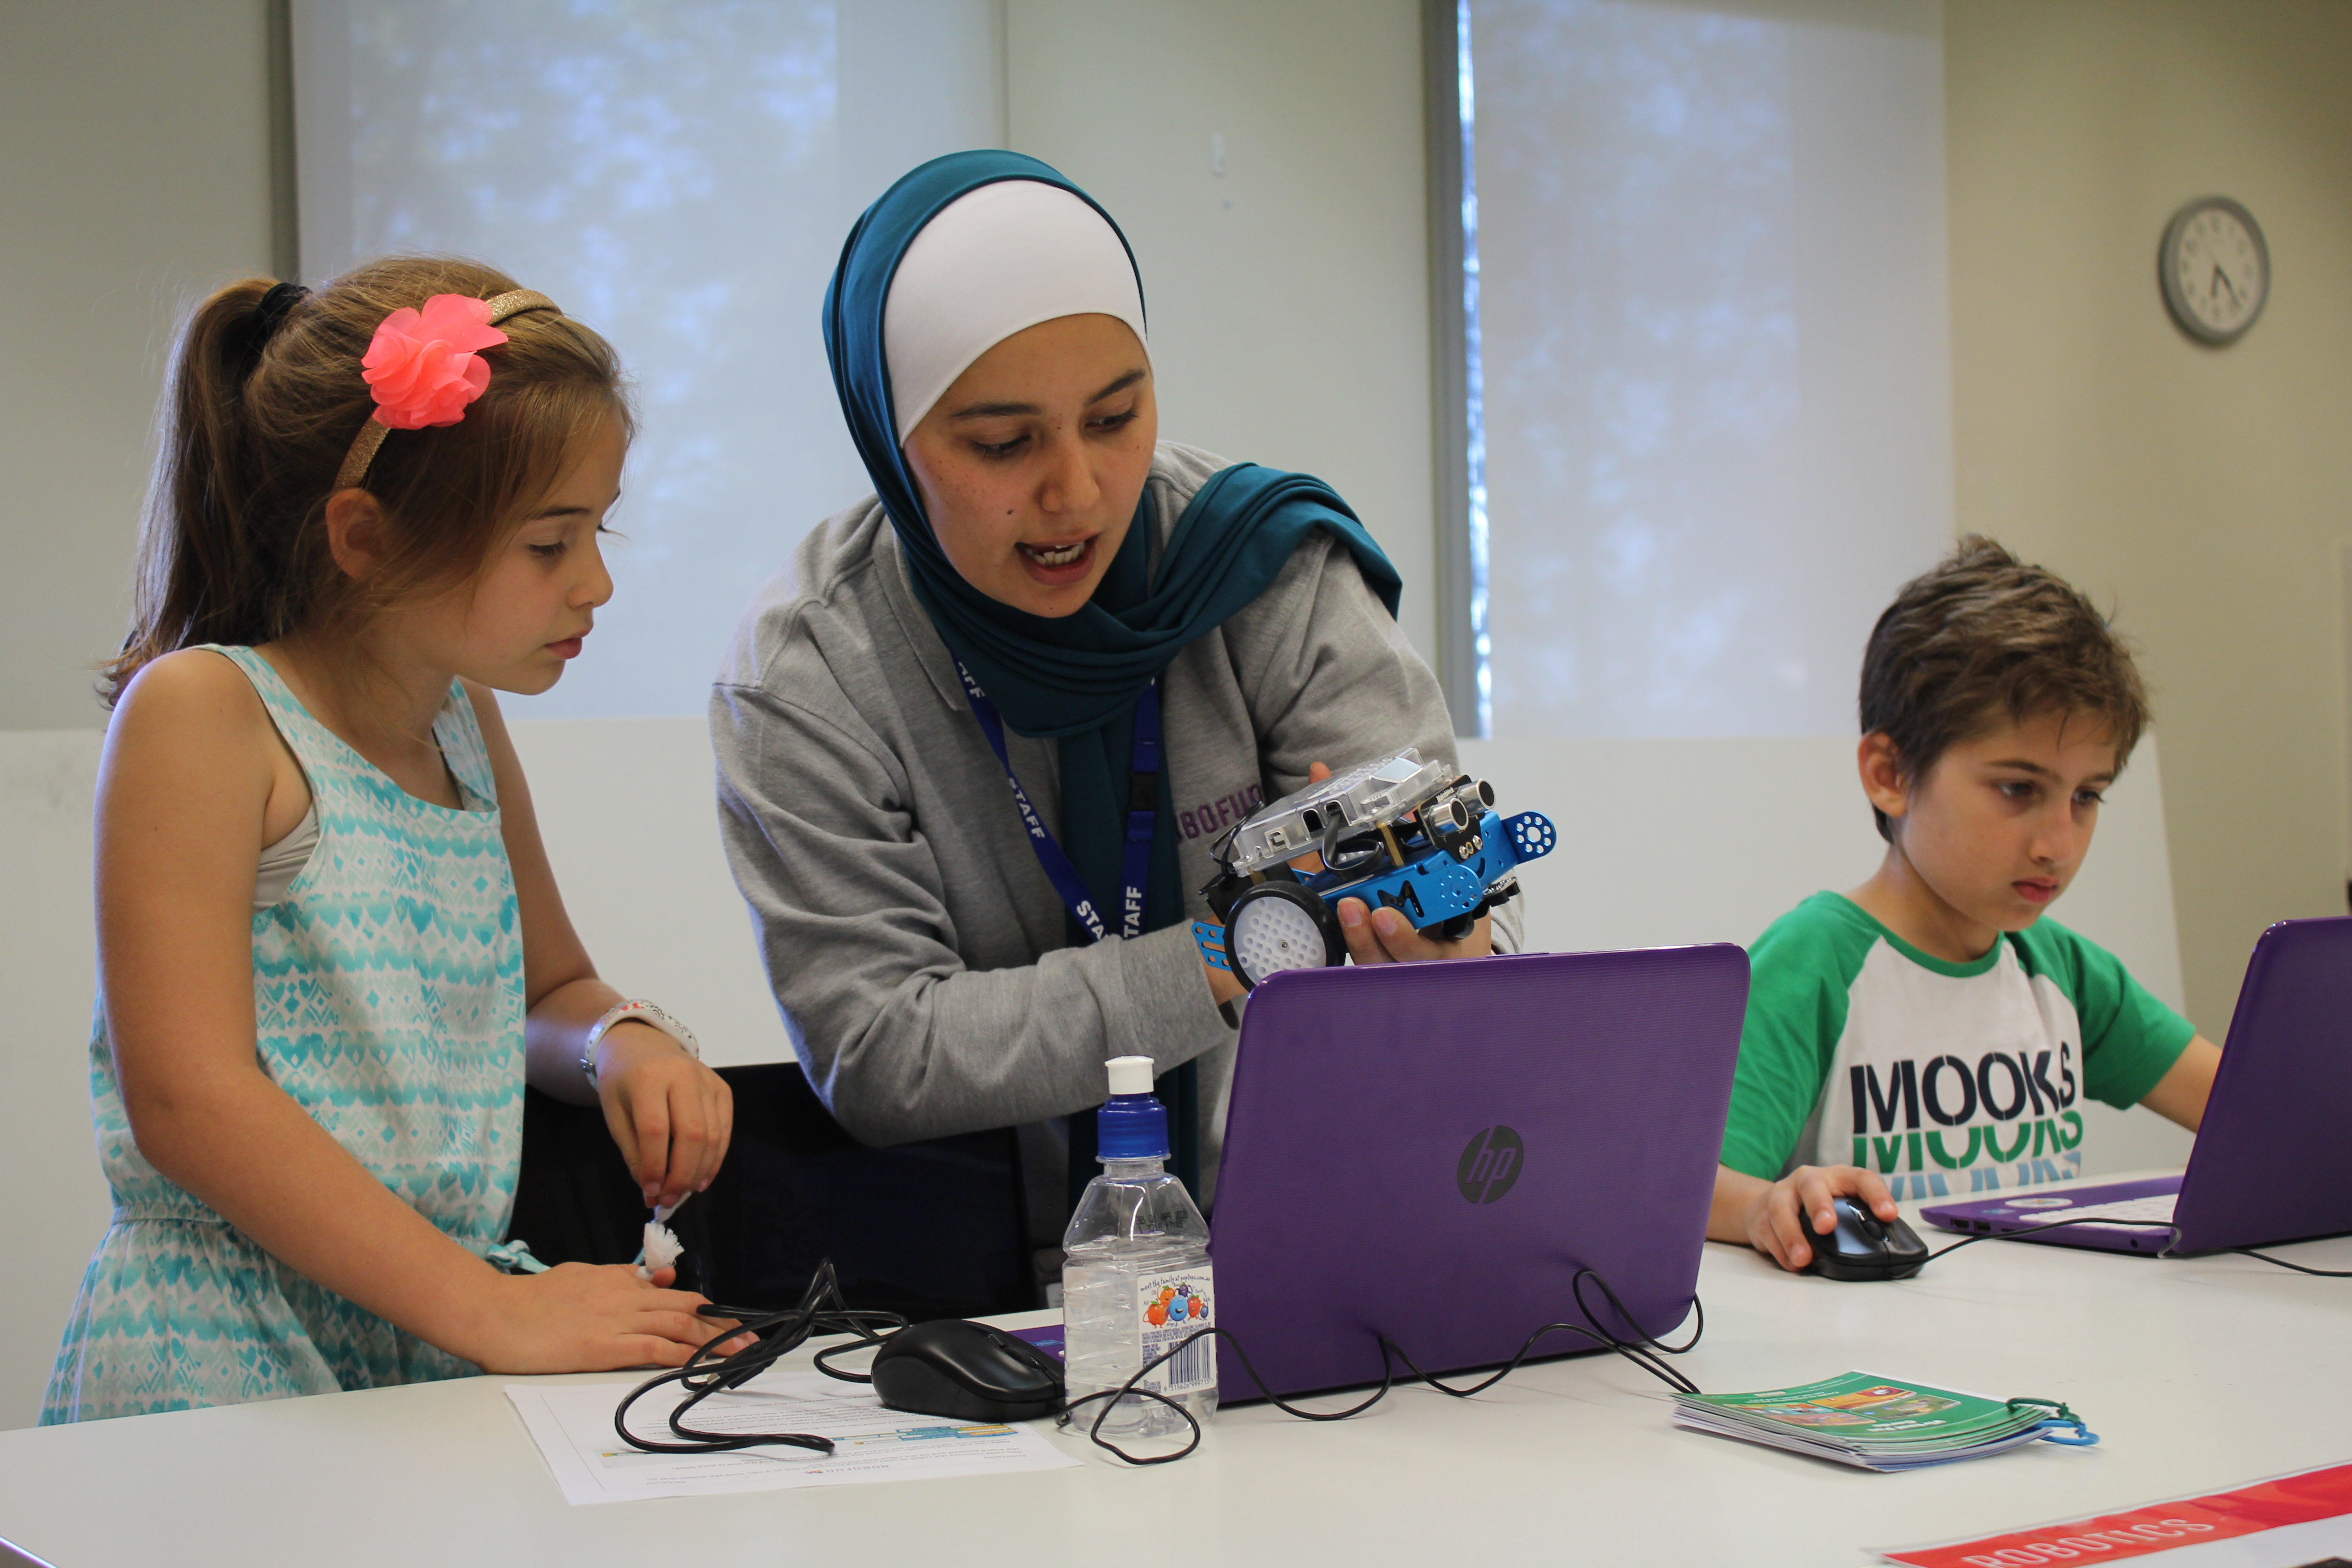 Lina's Robofun academy gives kids hands-on experience with STEM subjects.